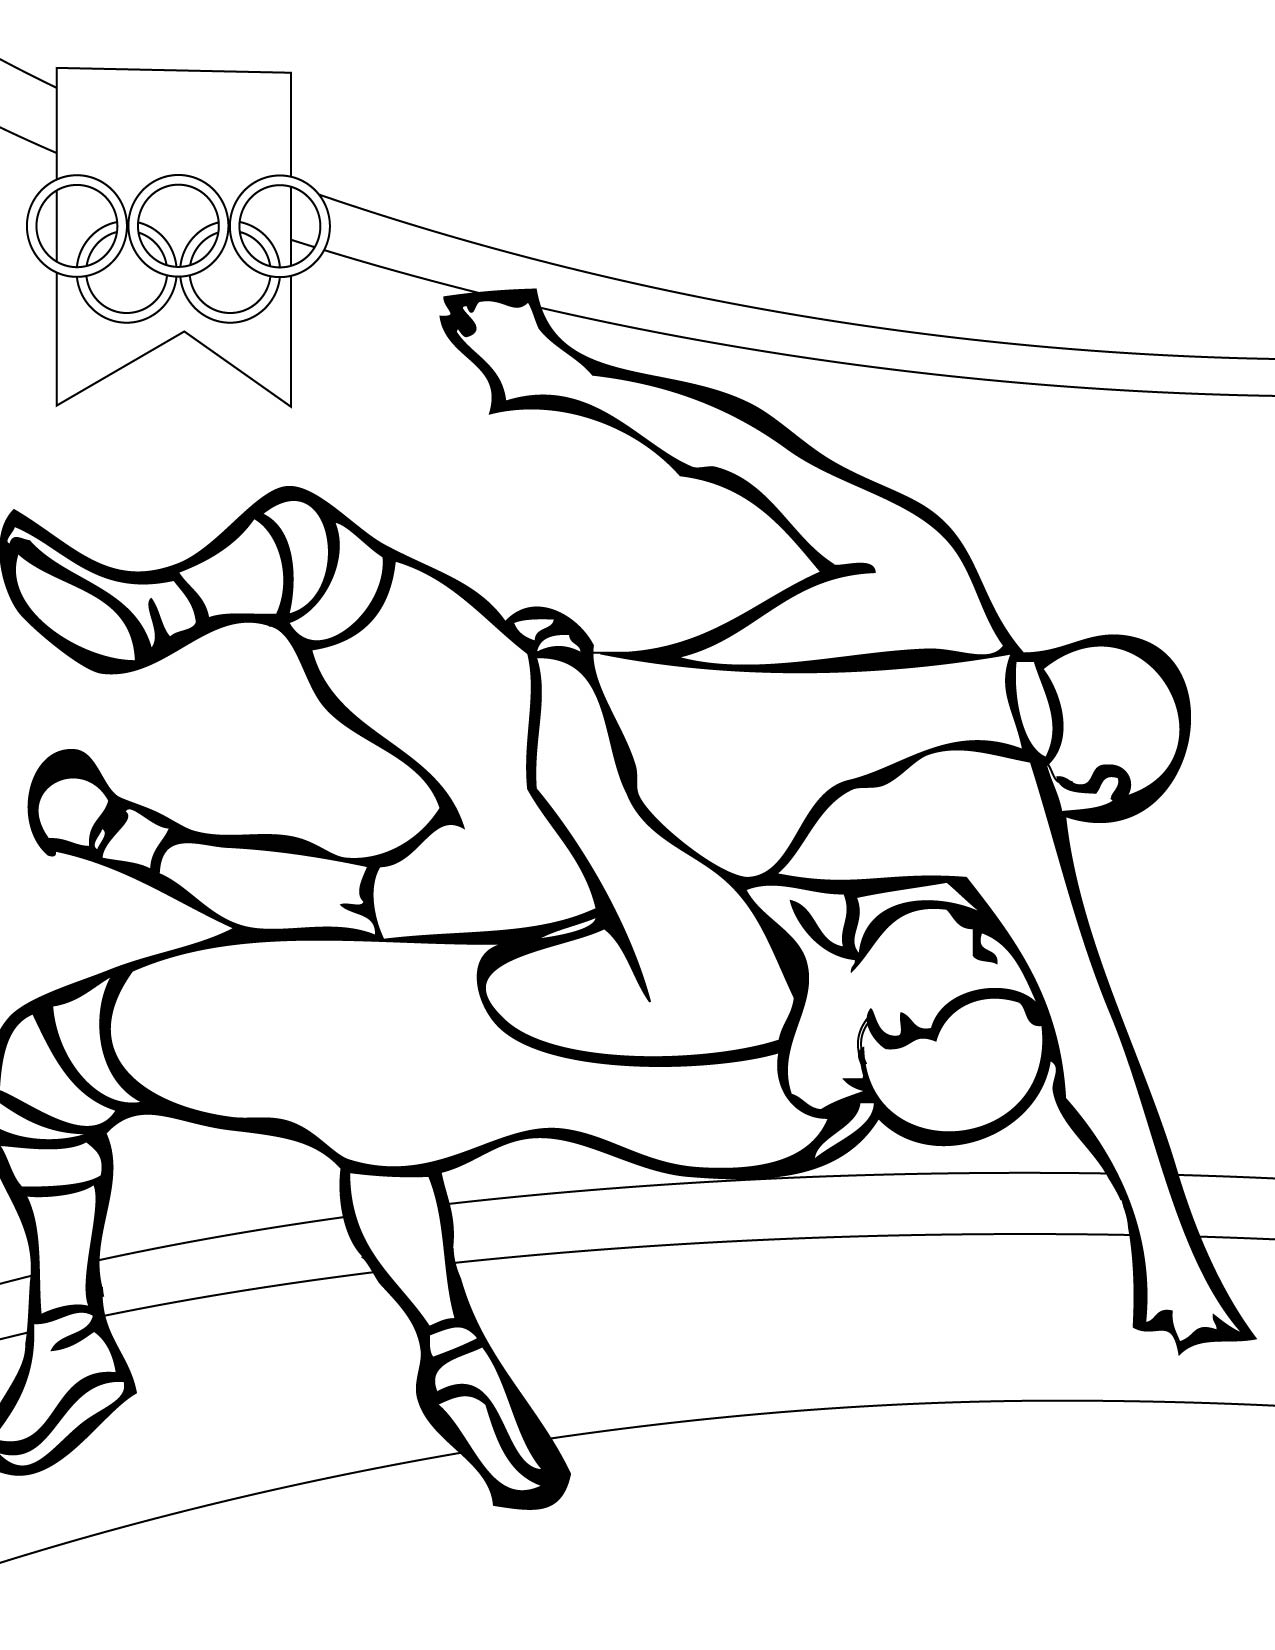 Wrestler clipart olympic sports SPORTS pages coloring  SPORTS